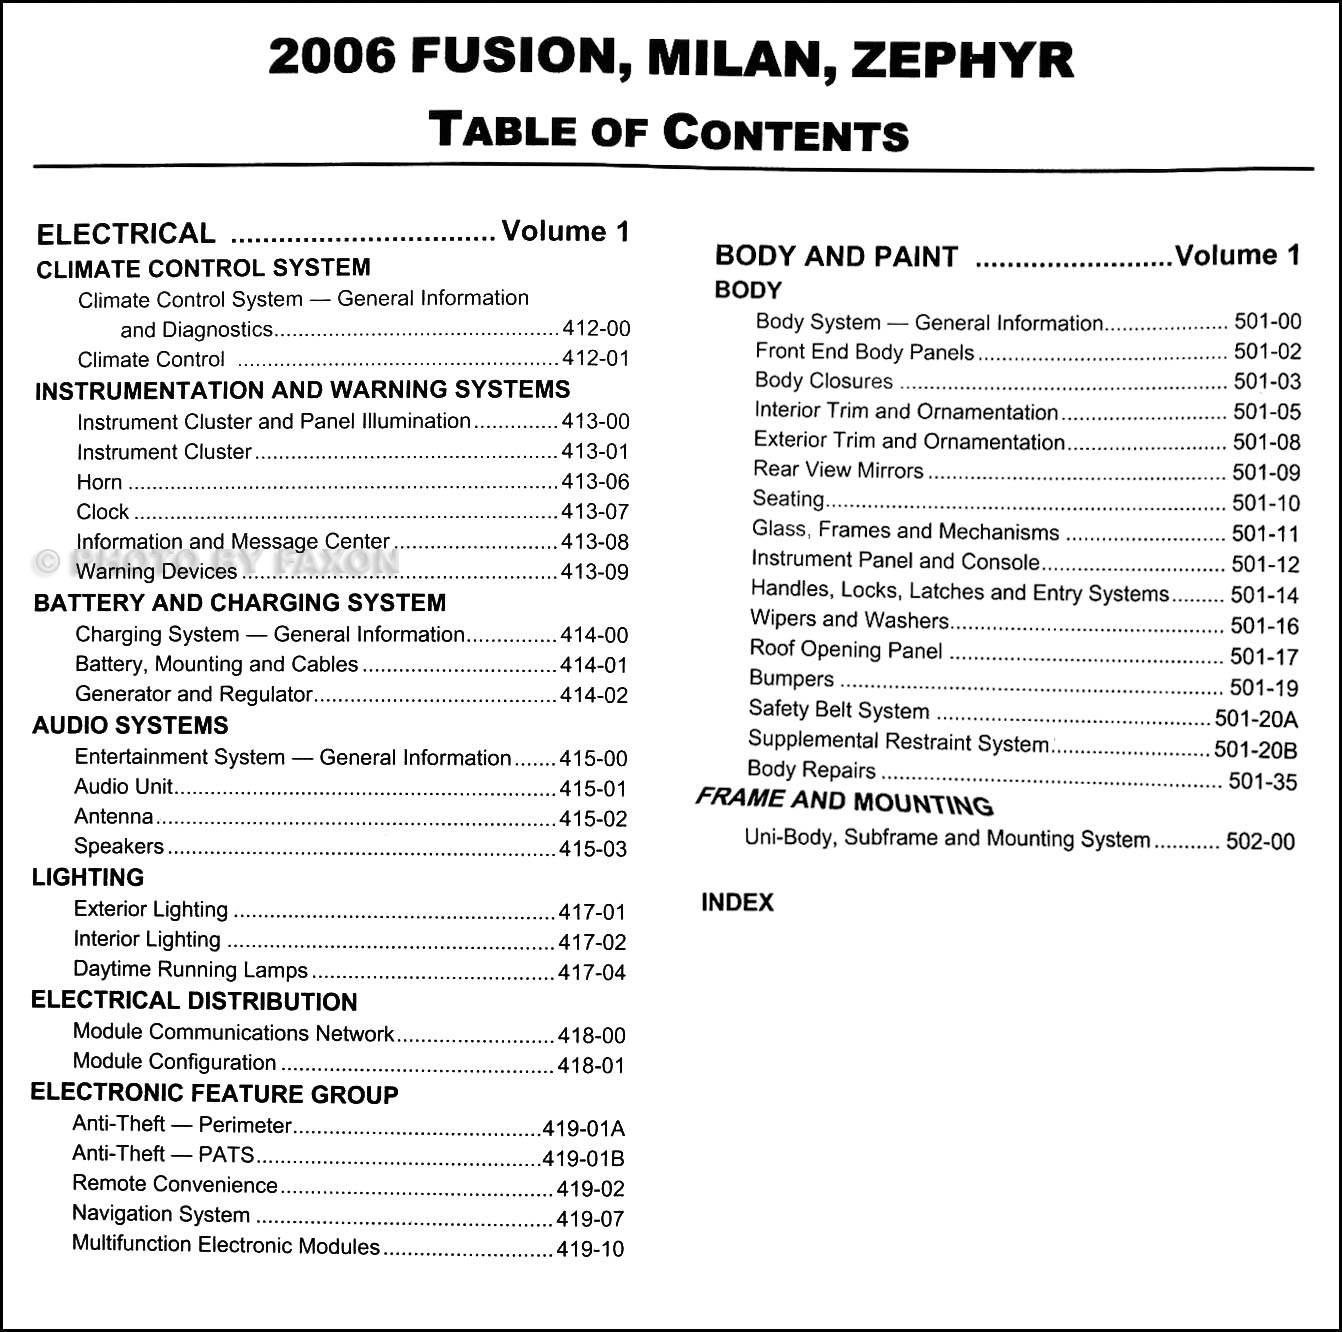 2006 Ford Fusion Wiring Diagram 31 Images Escape Fuse Box Manual Free Table Of Contents Page 2